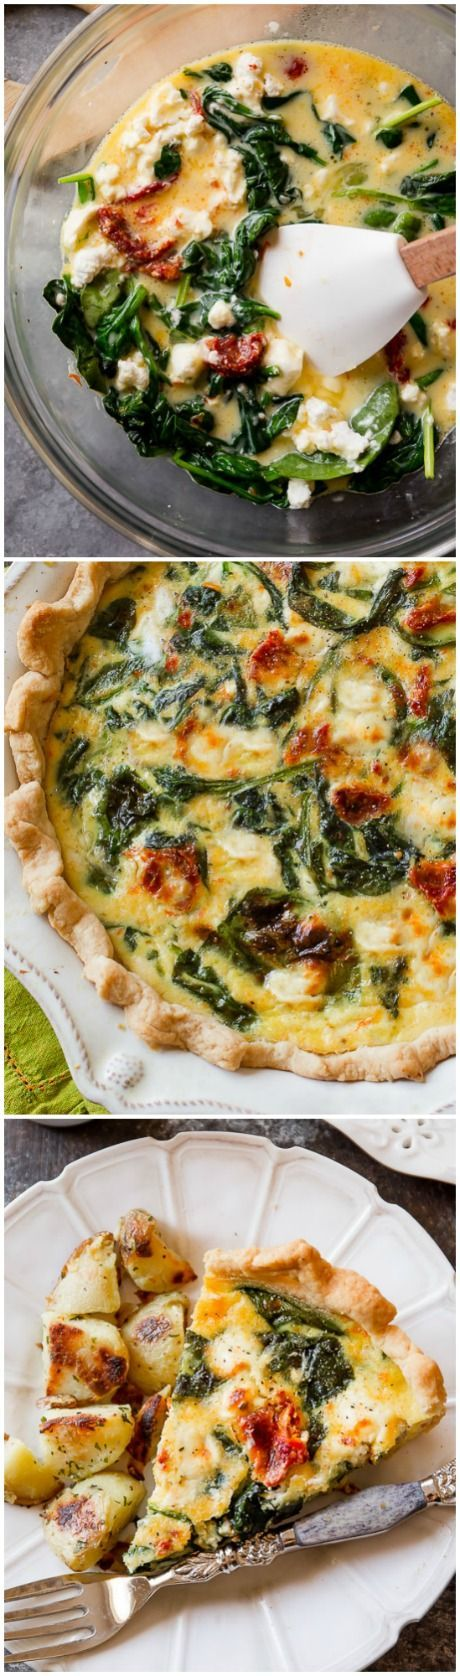 EASY, flavorful, delicious quiche using simple flavor-packed ingredients!